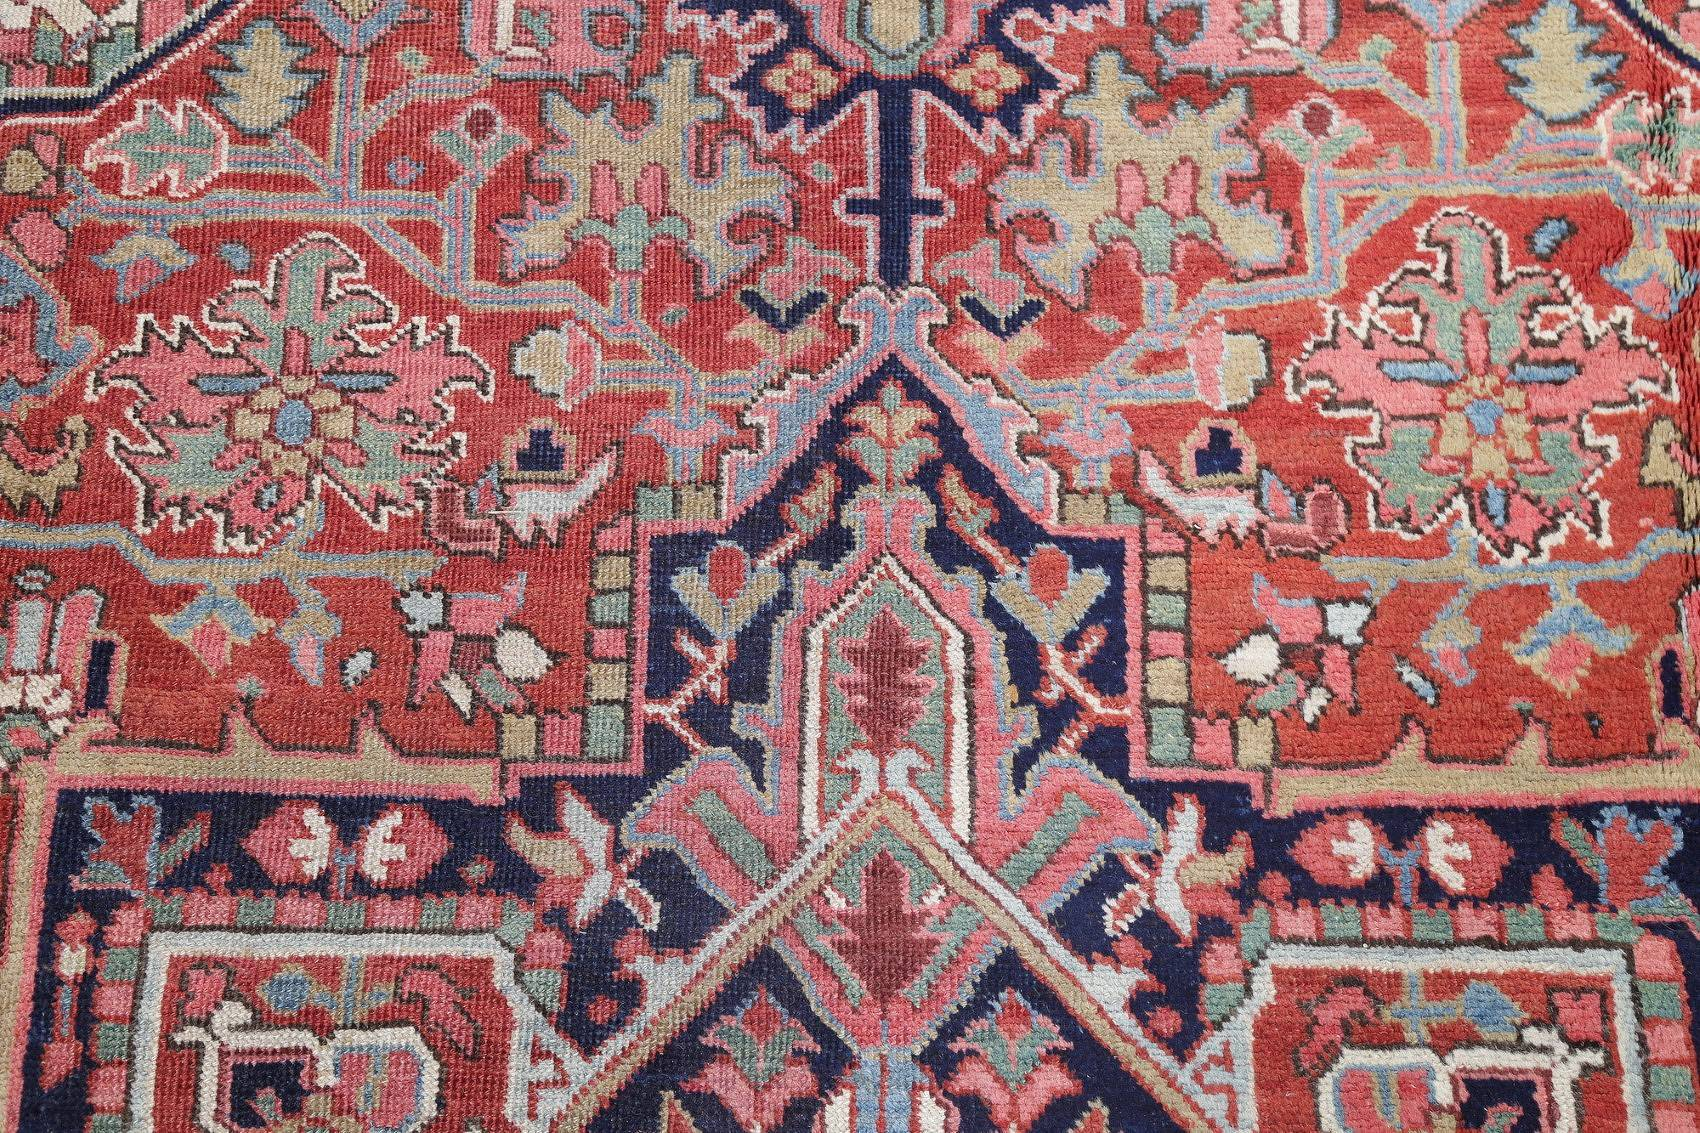 Antique Vegetable Dye Hariz Serapi Persian Hand-Knotted 9x12 Area Rug Wool